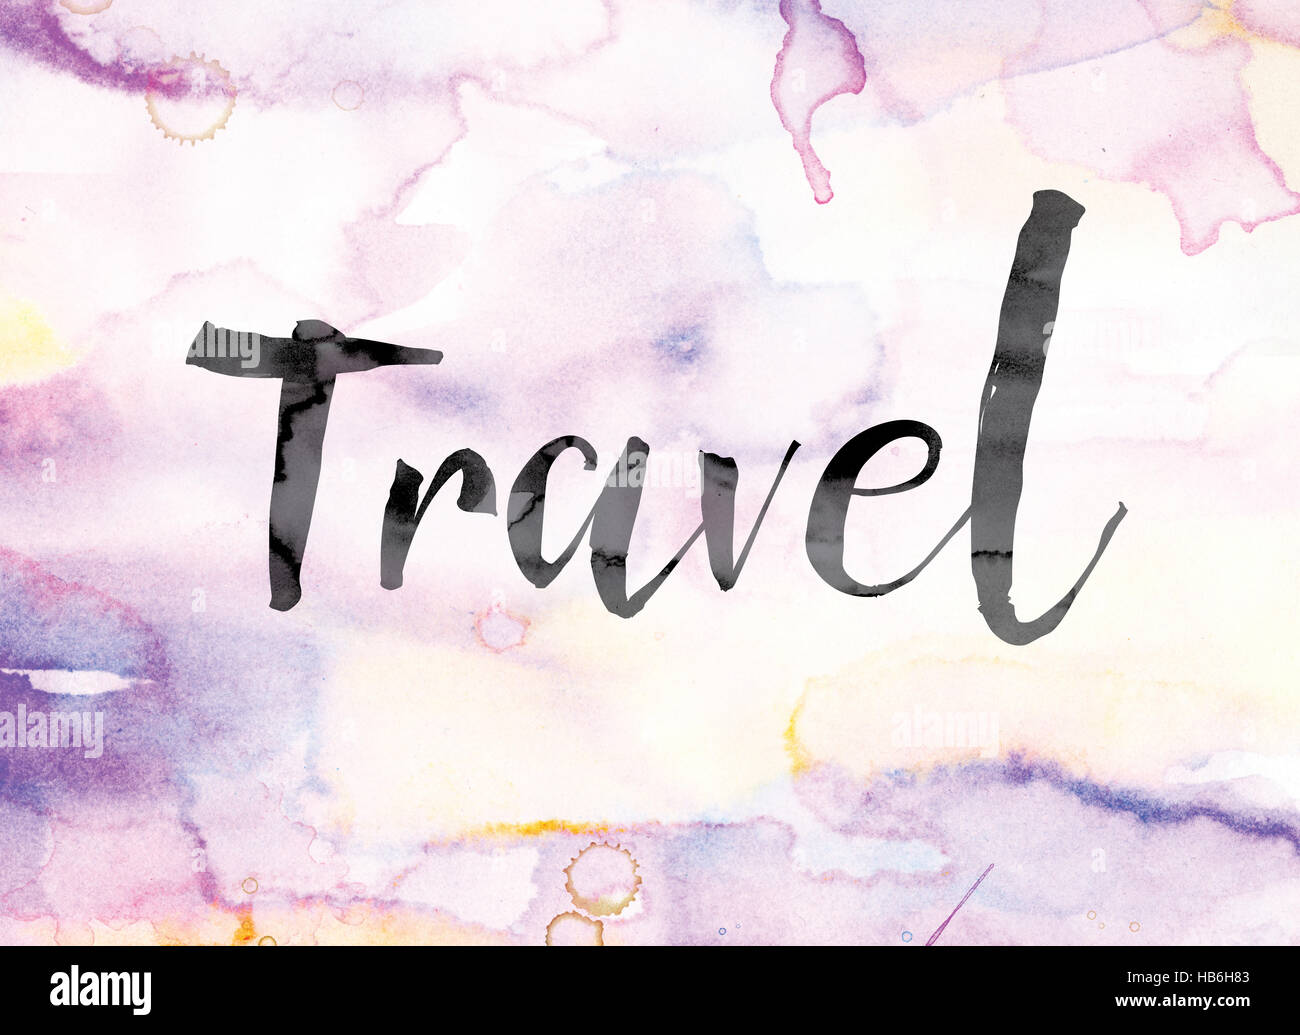 the word travel painted in black ink over a colorful watercolor